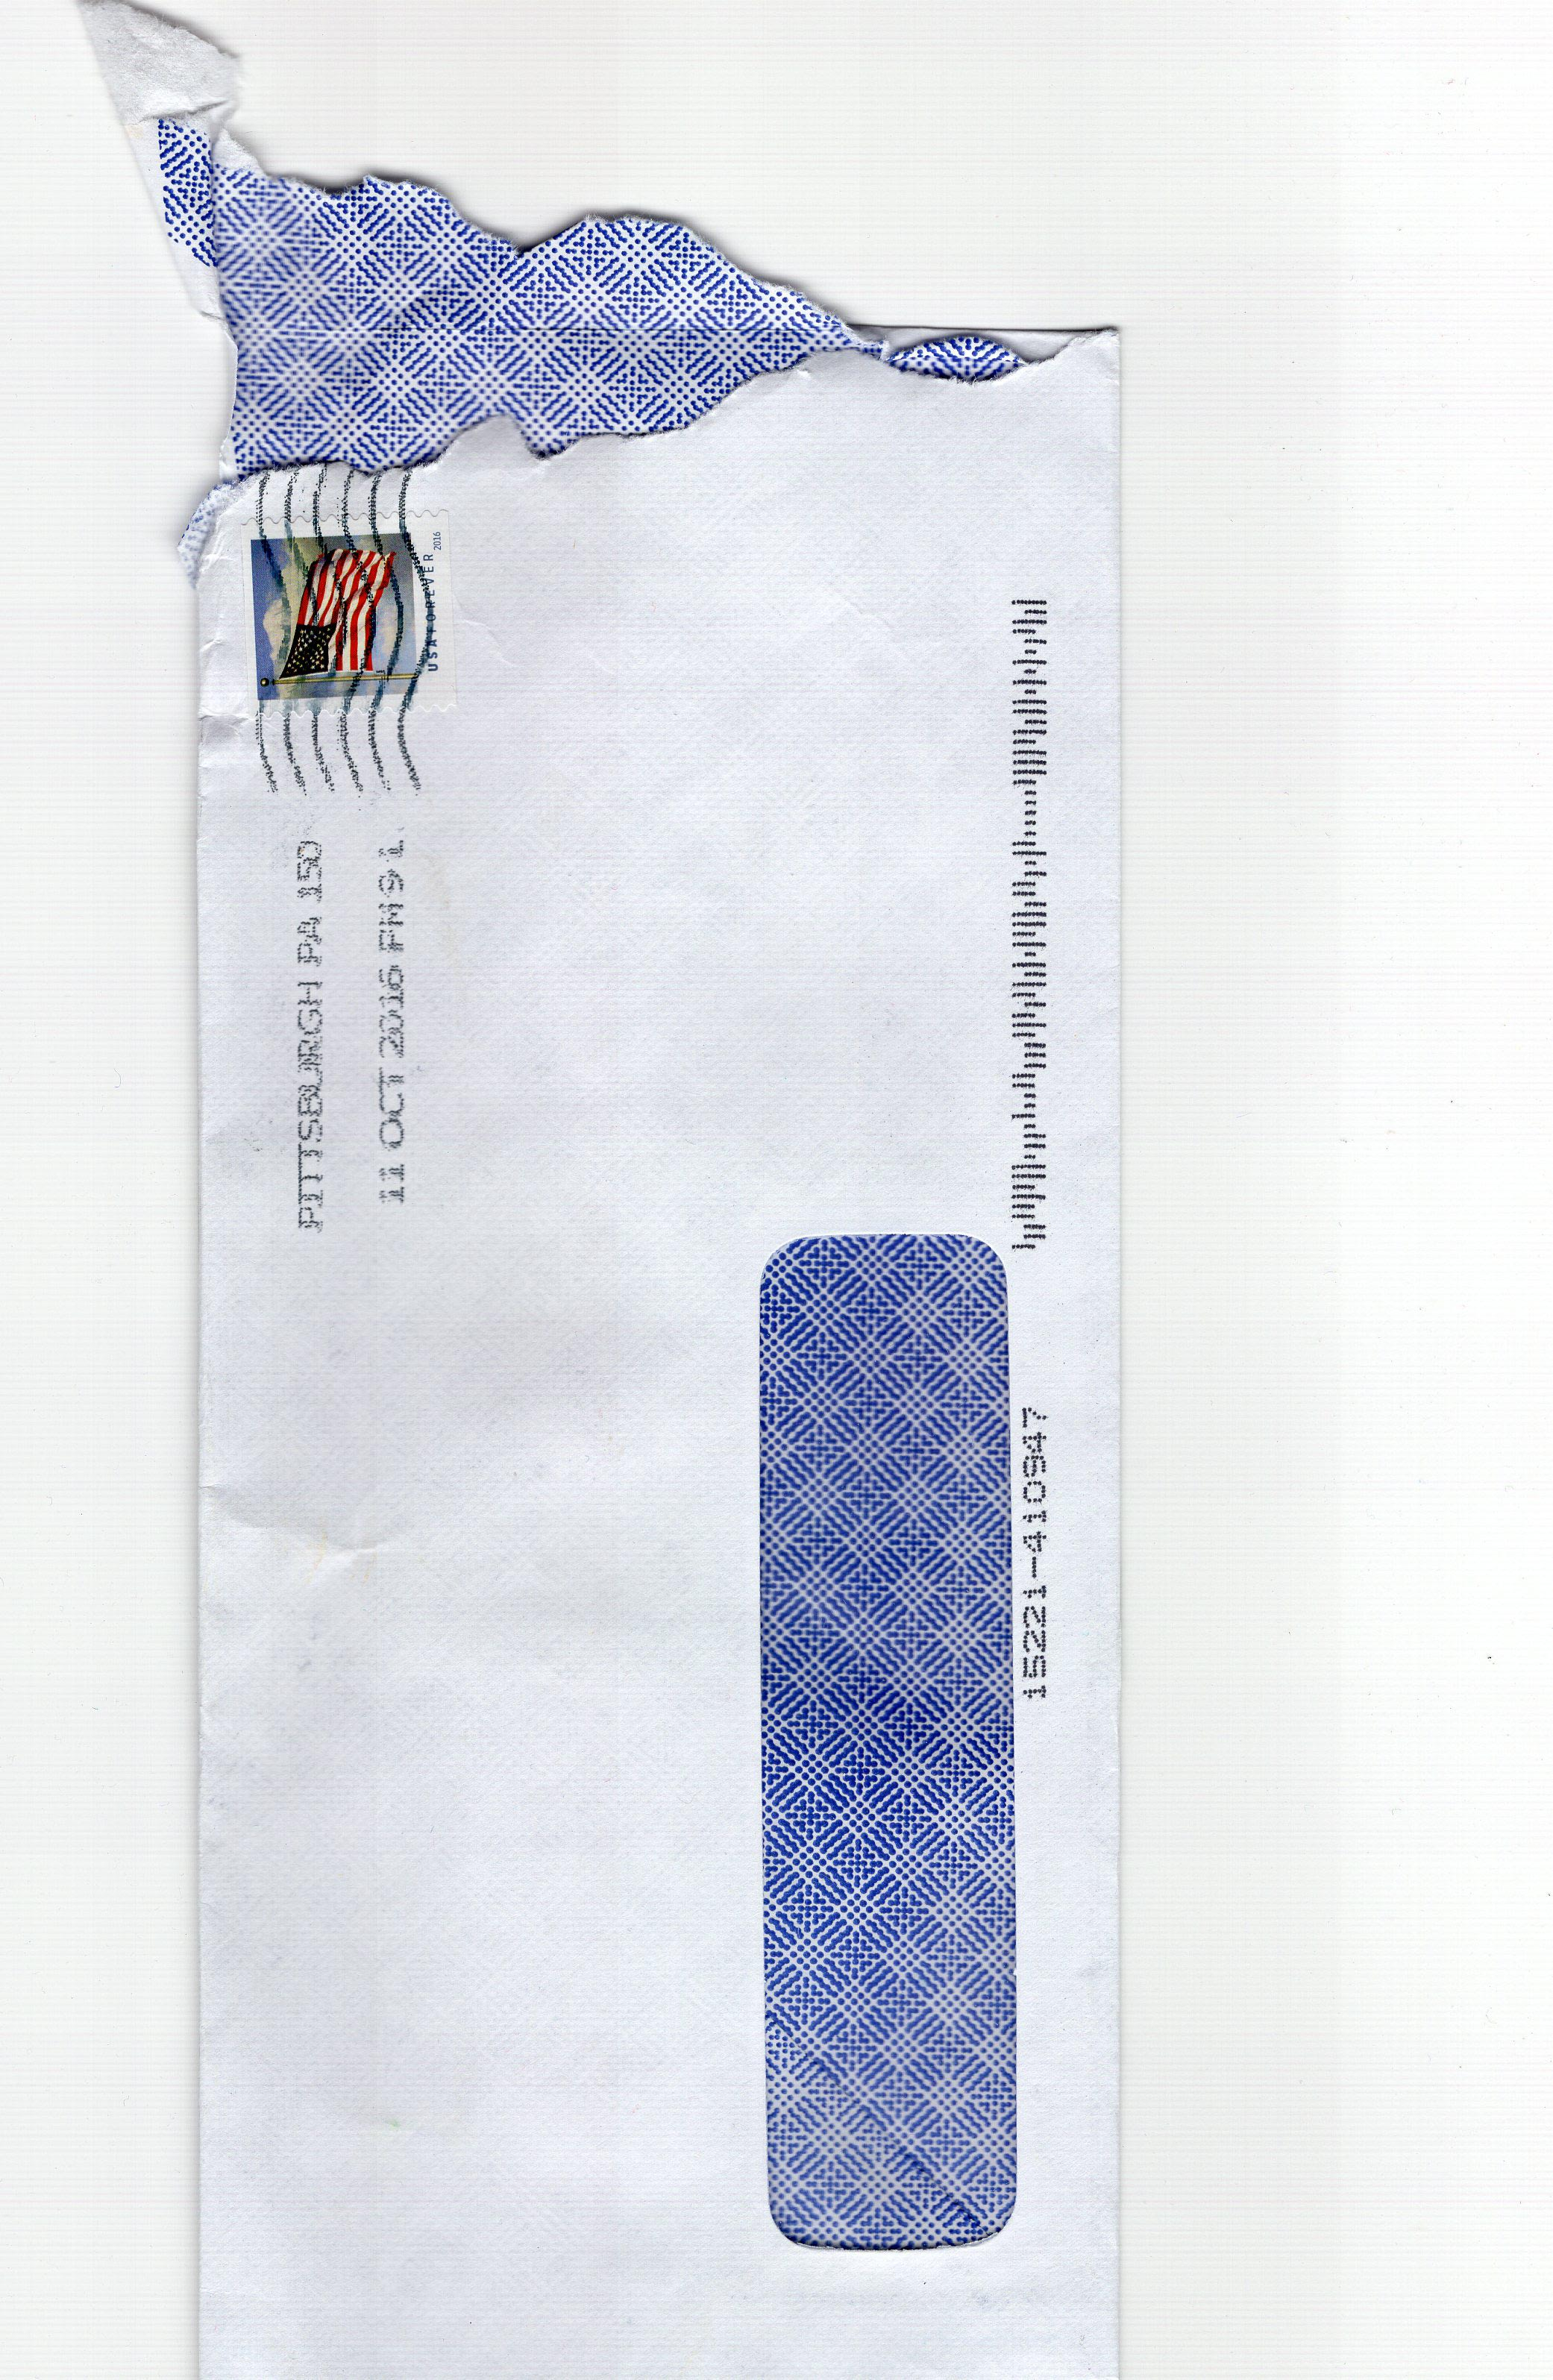 I received a blackmail letter | Dave Eargle